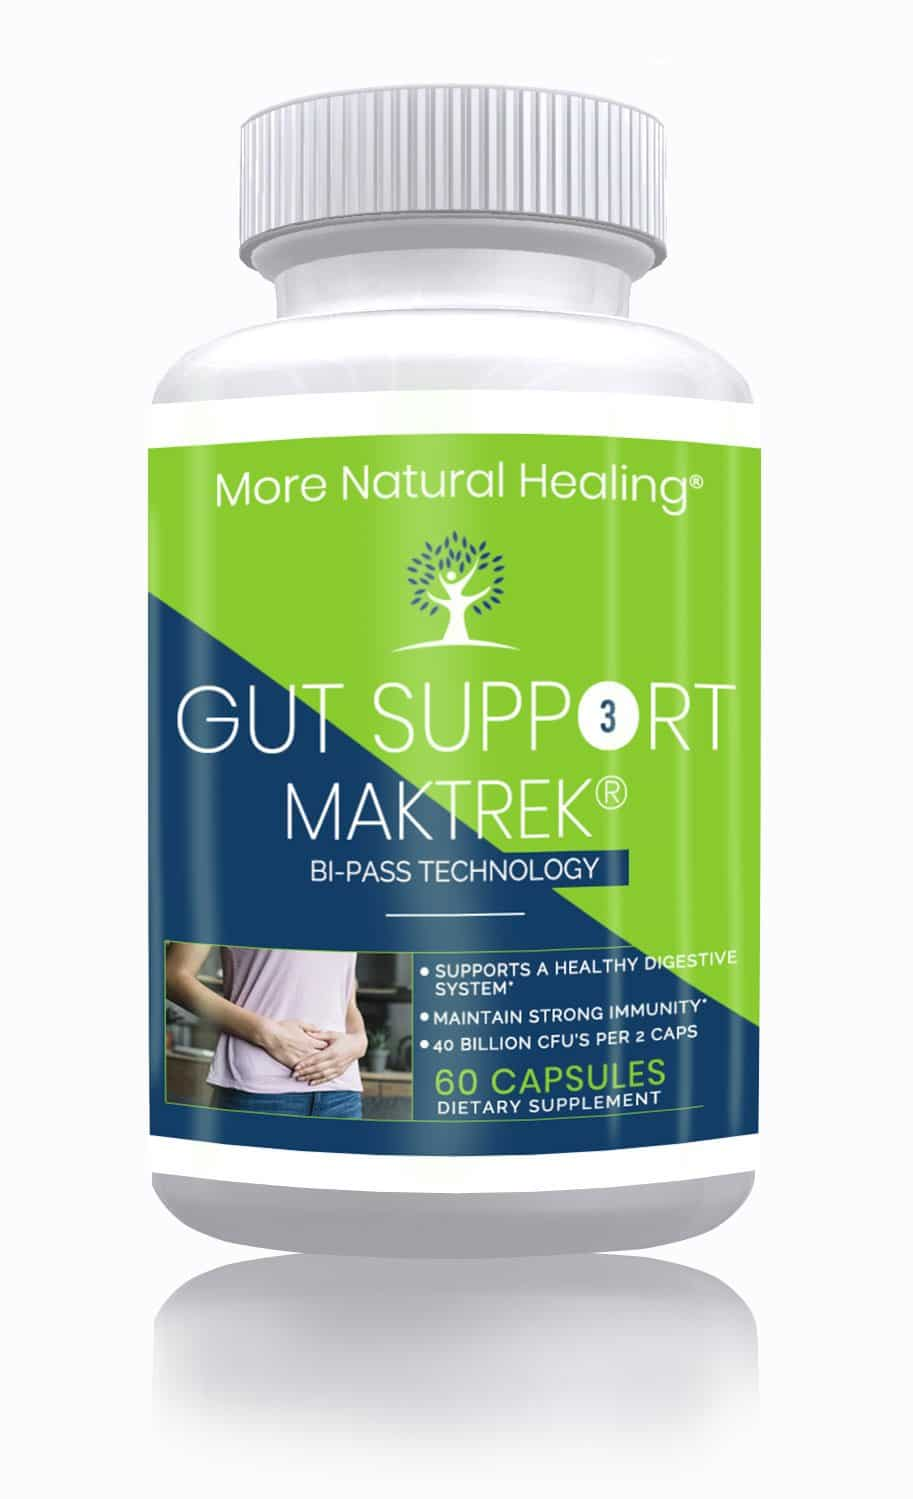 Gut Support - 40 Billion - More Natural Healing